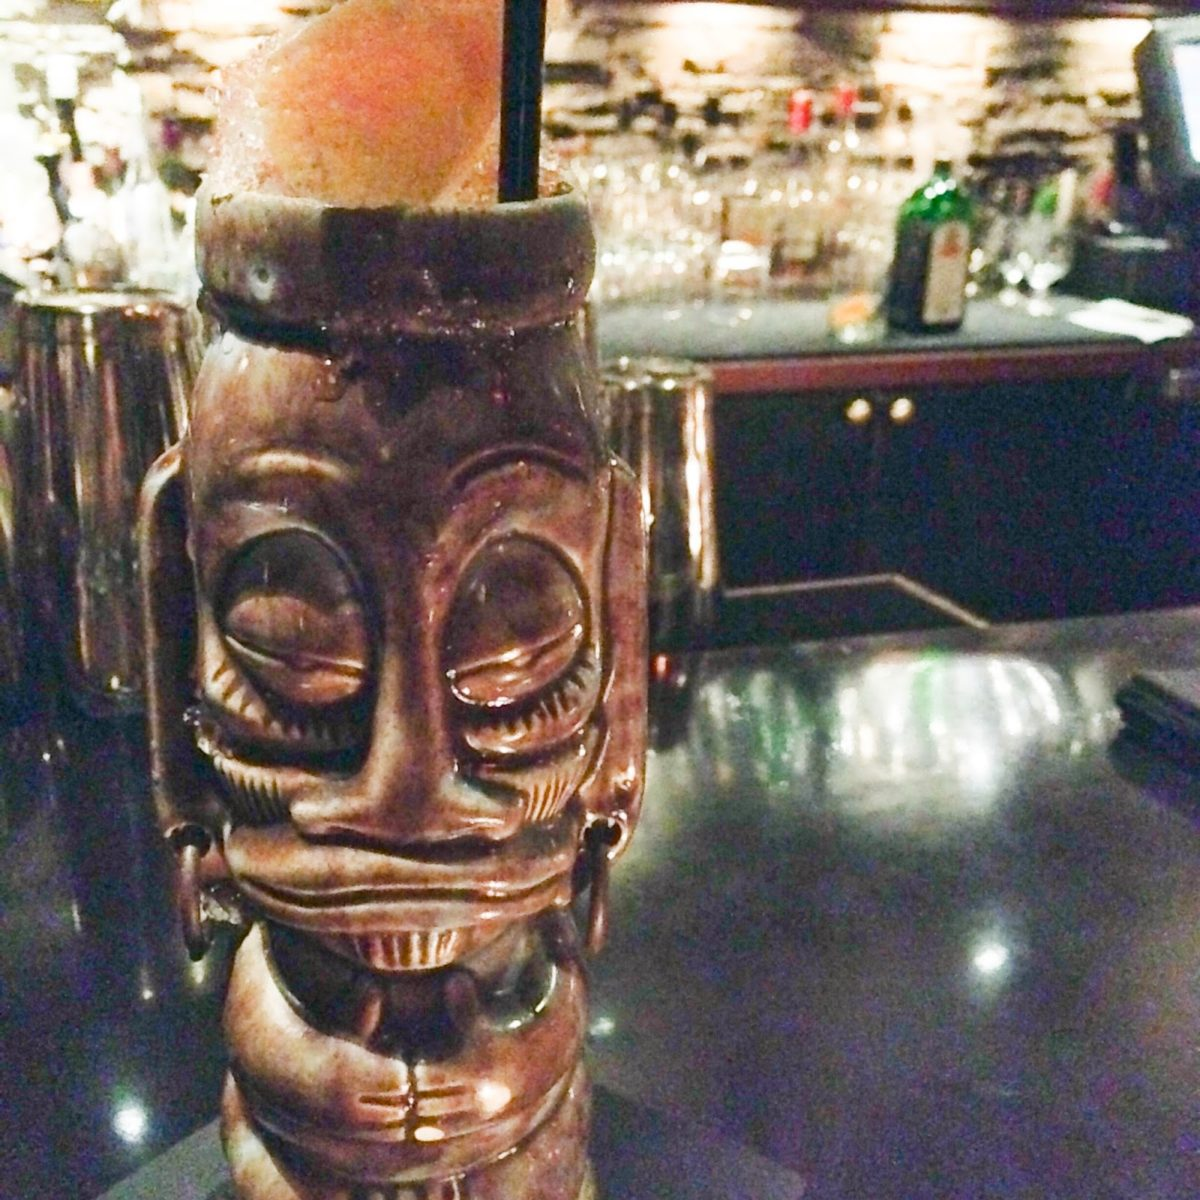 Bartender! There's Chile in my Tiki Drink (The Aztec Warrior)